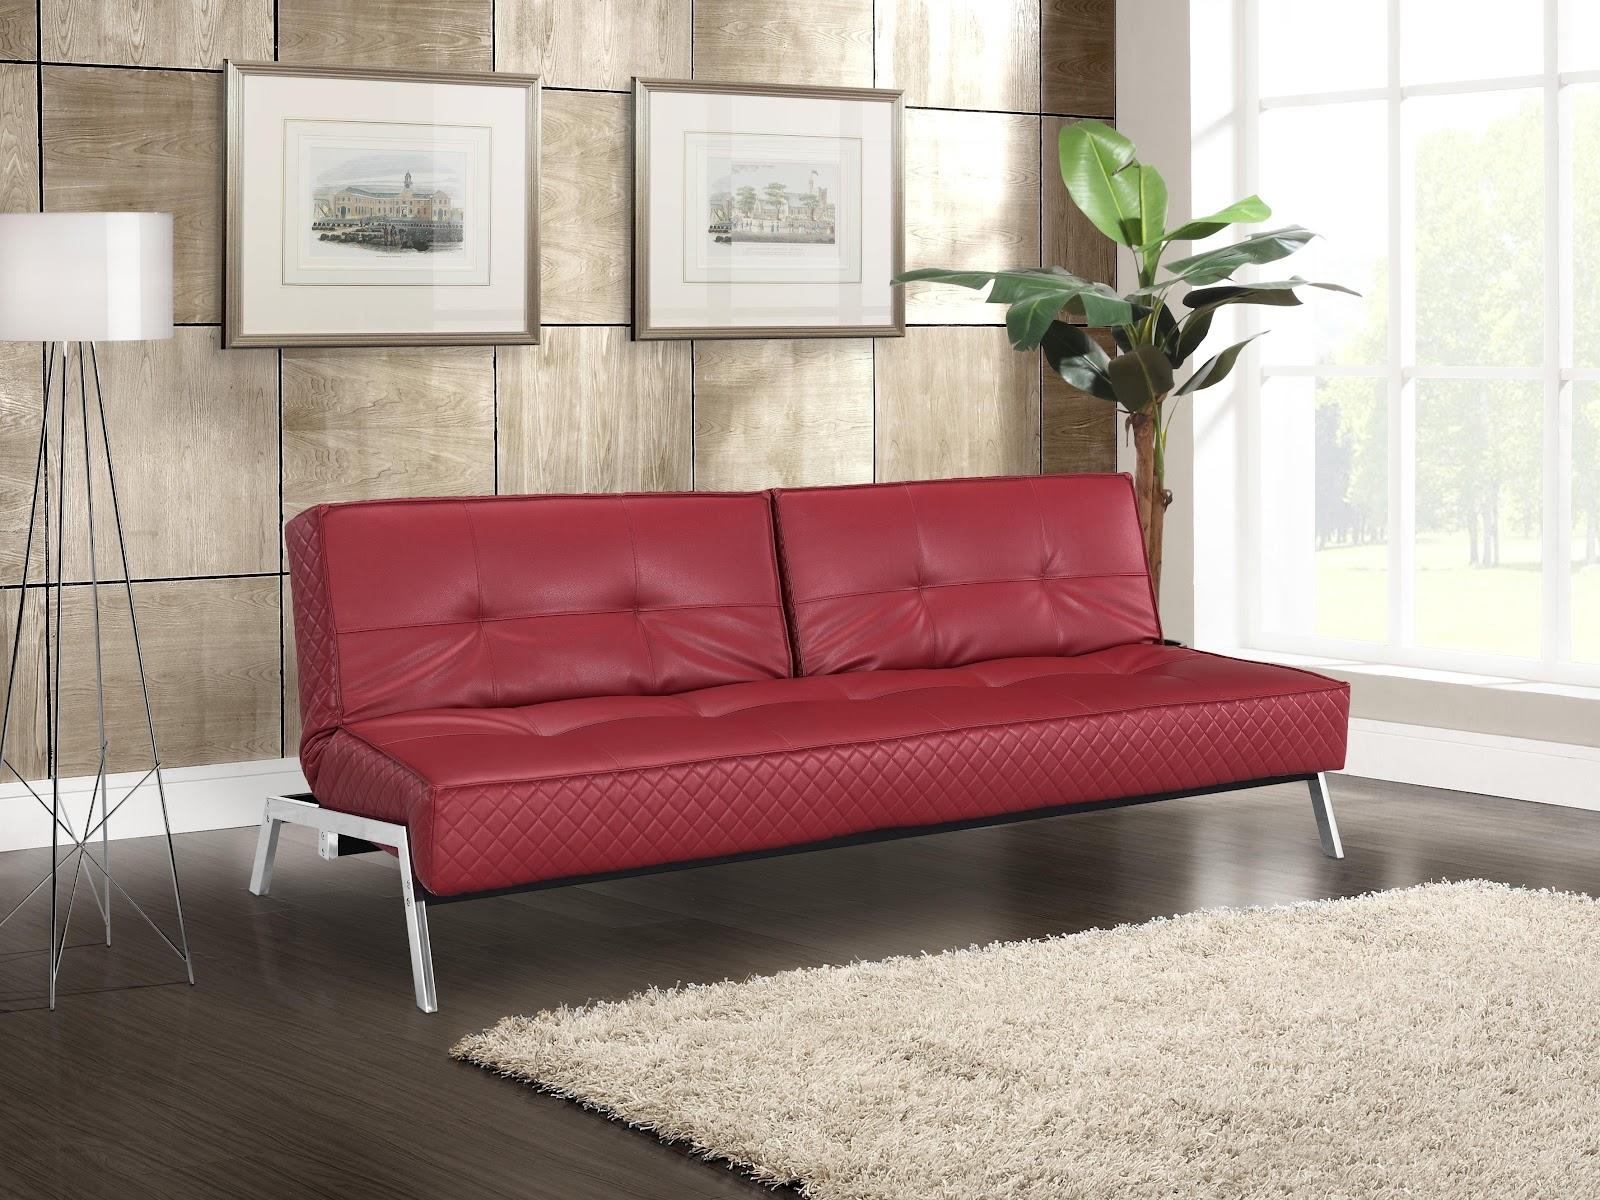 Dark Red Leather Sofa With Short Carving Black Wooden Legs On For Dark Red Leather Sofas (View 12 of 20)